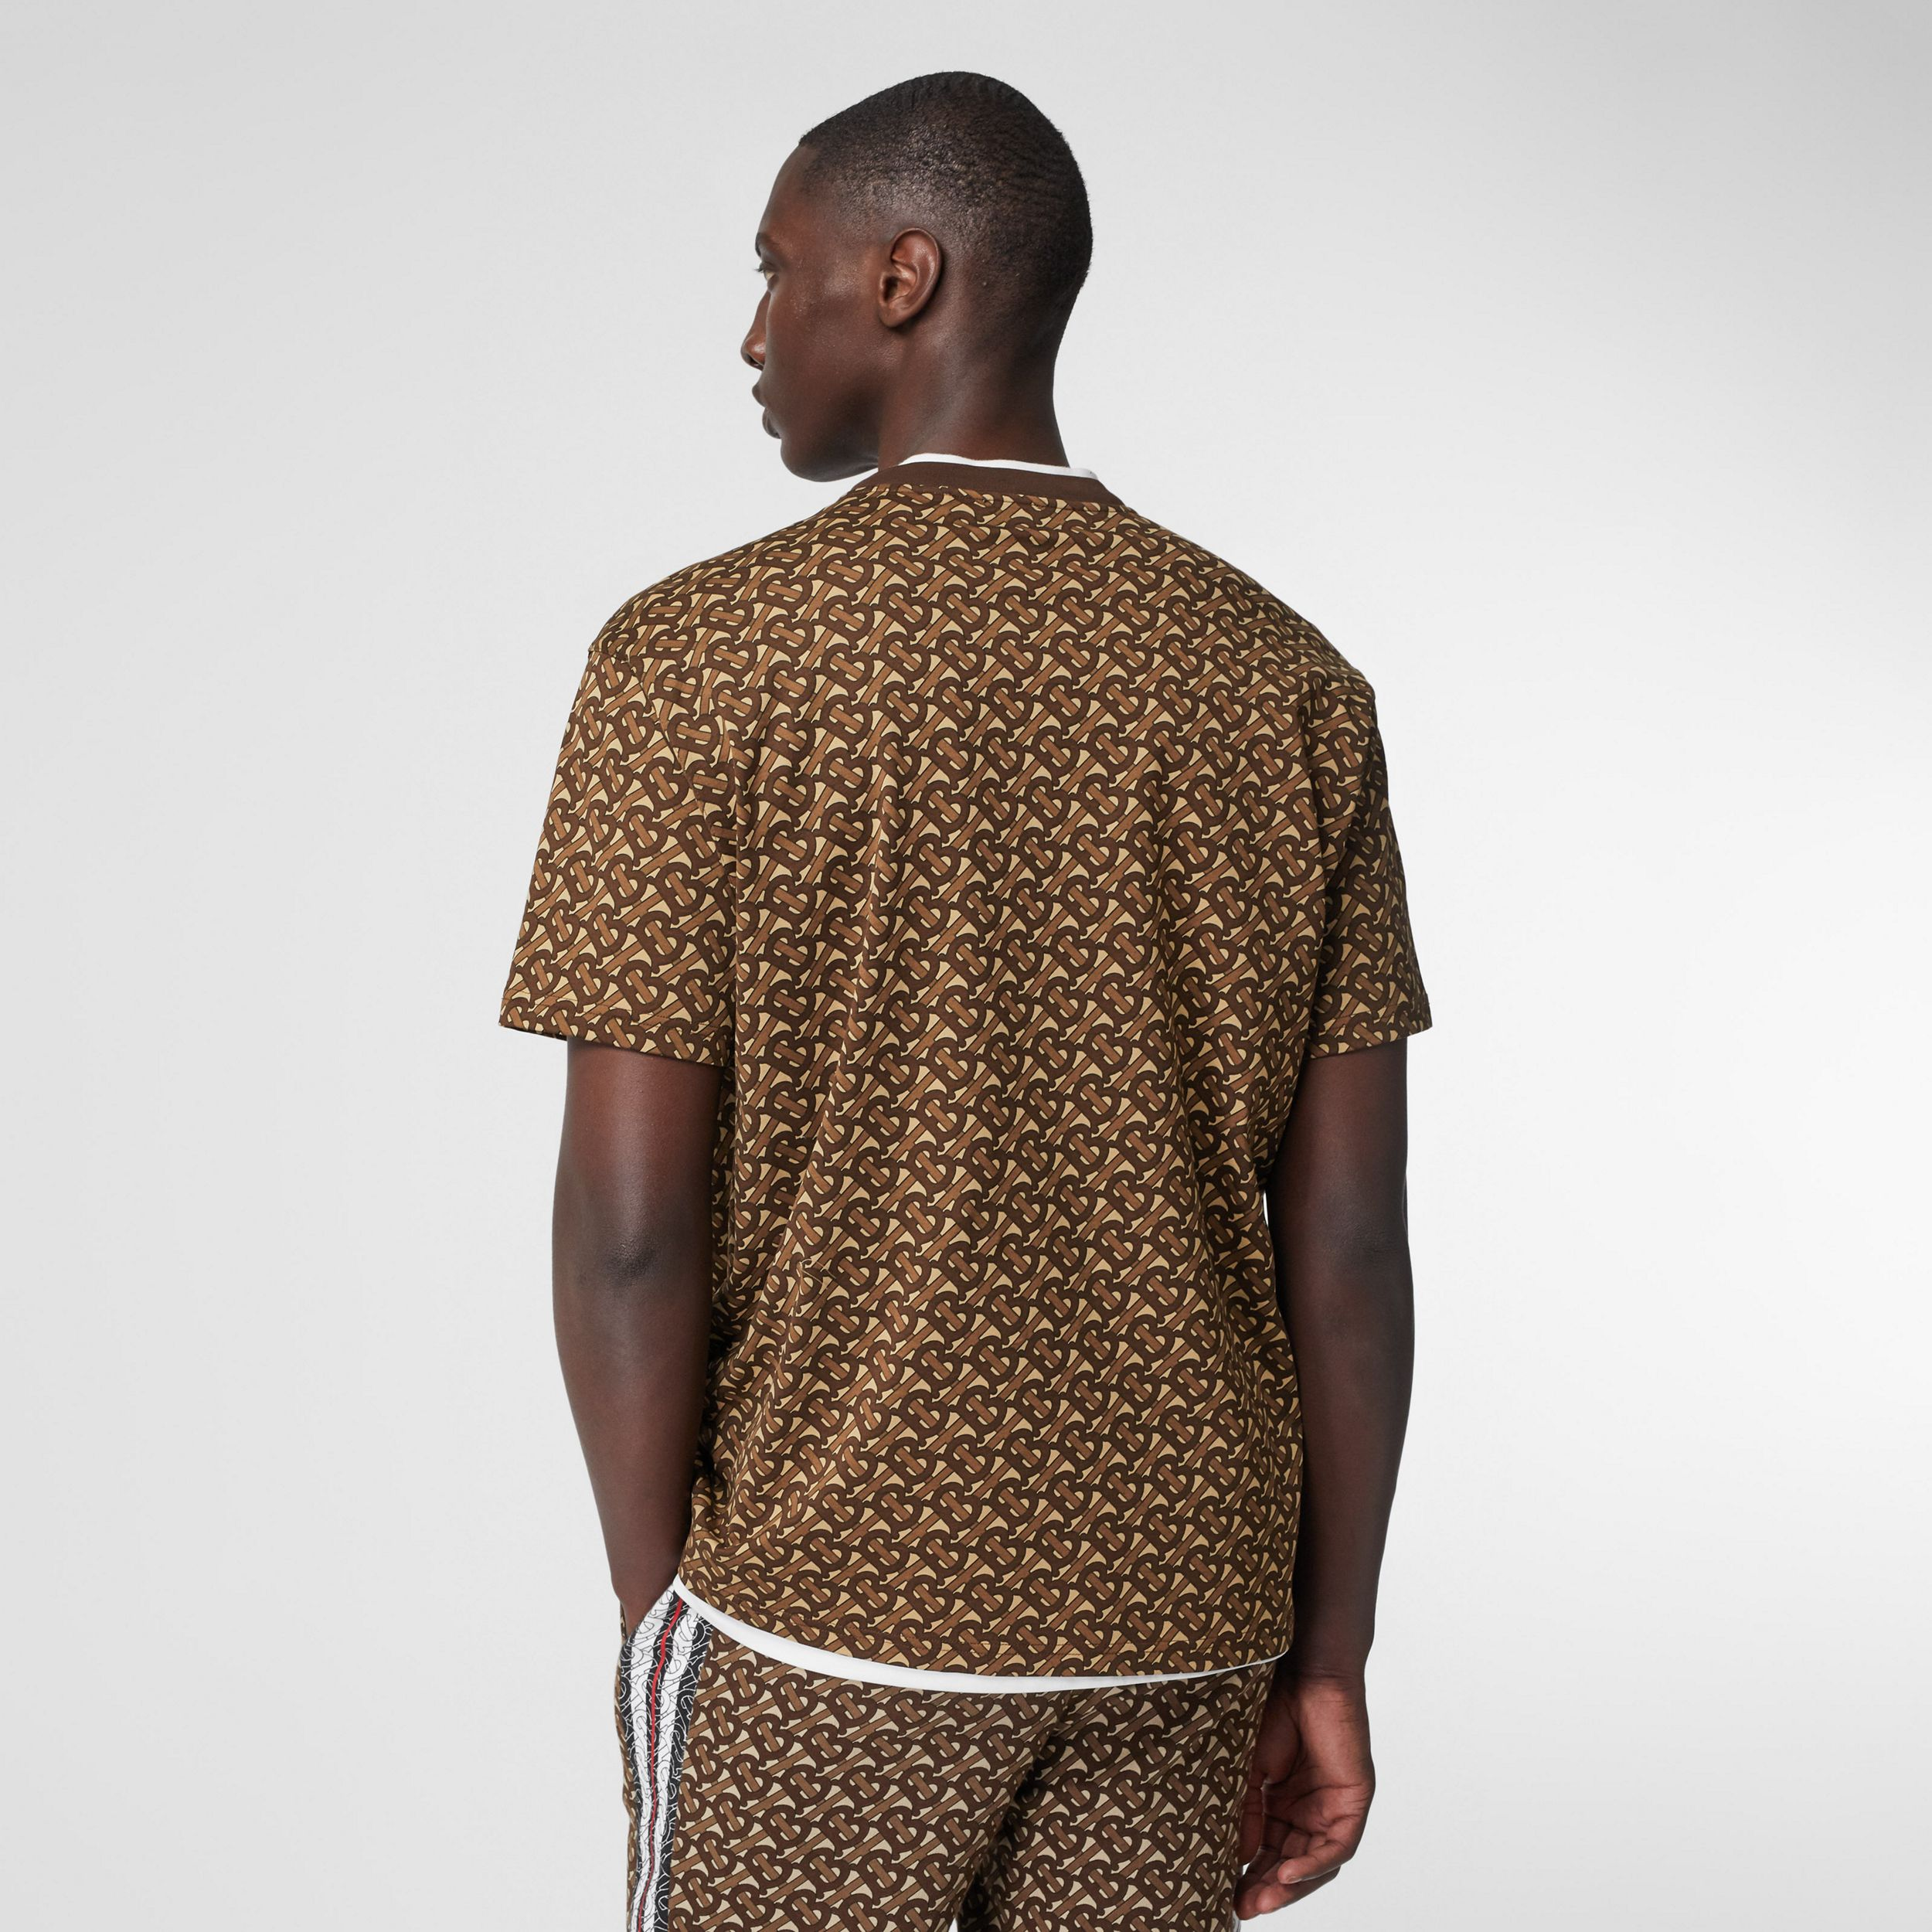 Monogram Stripe Print Cotton T-shirt in Bridle Brown - Men | Burberry - 3